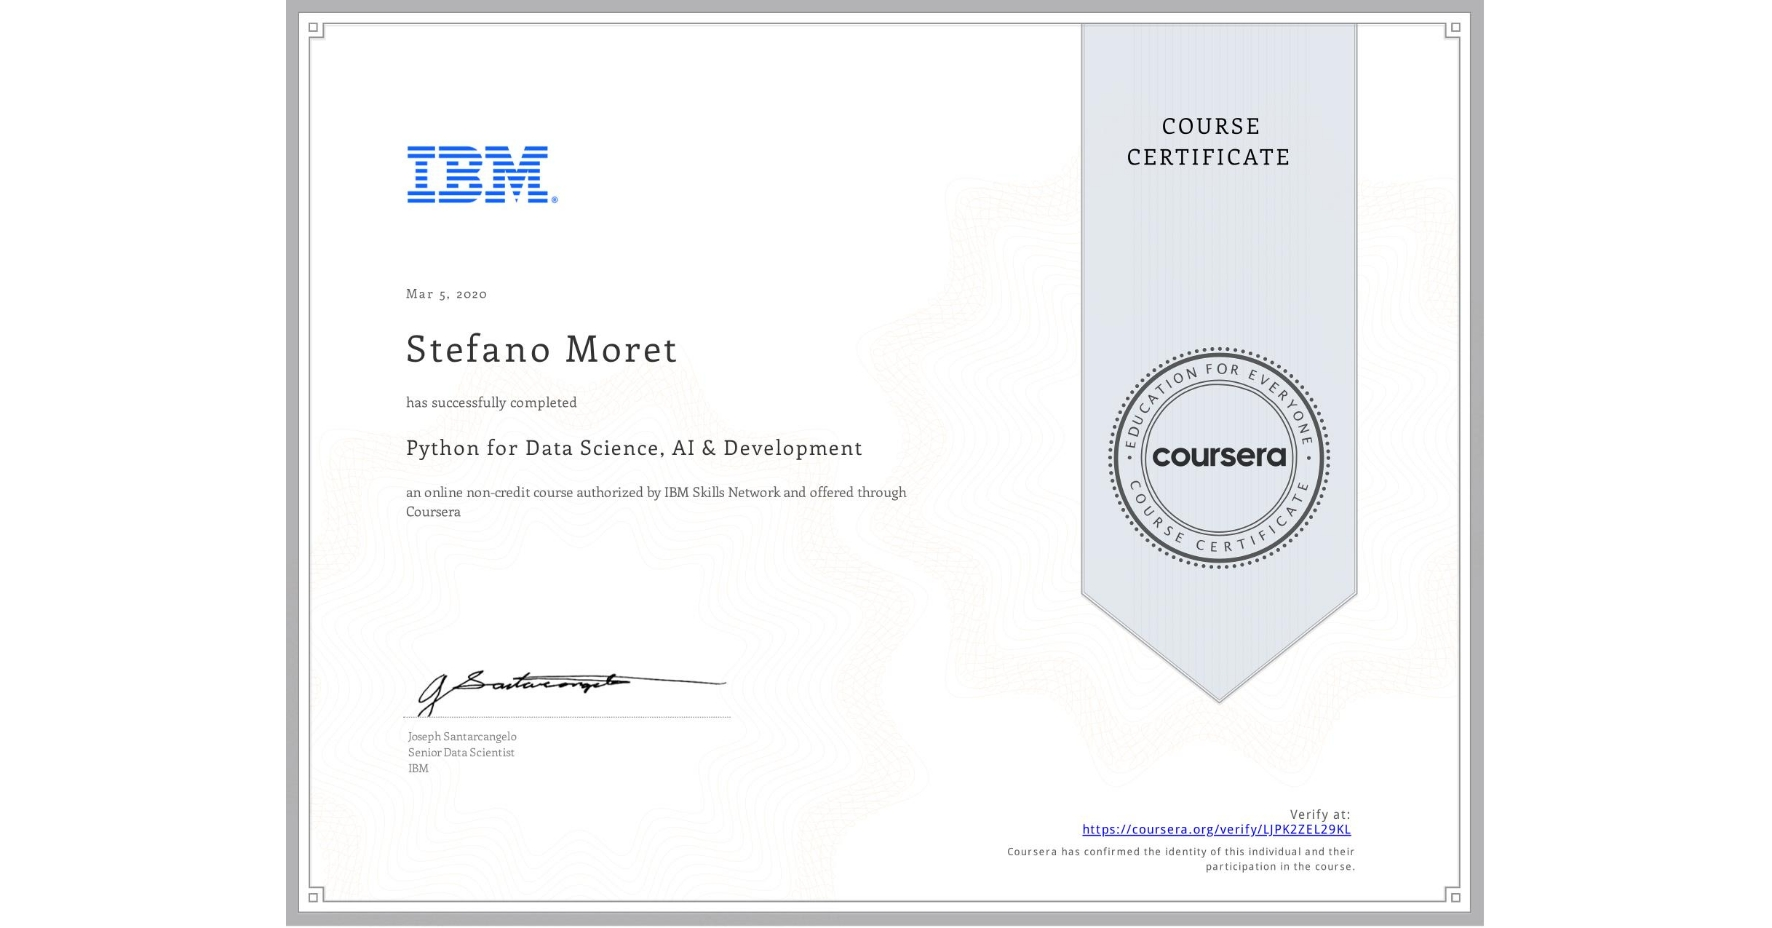 View certificate for Stefano Moret, Python for Data Science, AI & Development, an online non-credit course authorized by IBM and offered through Coursera